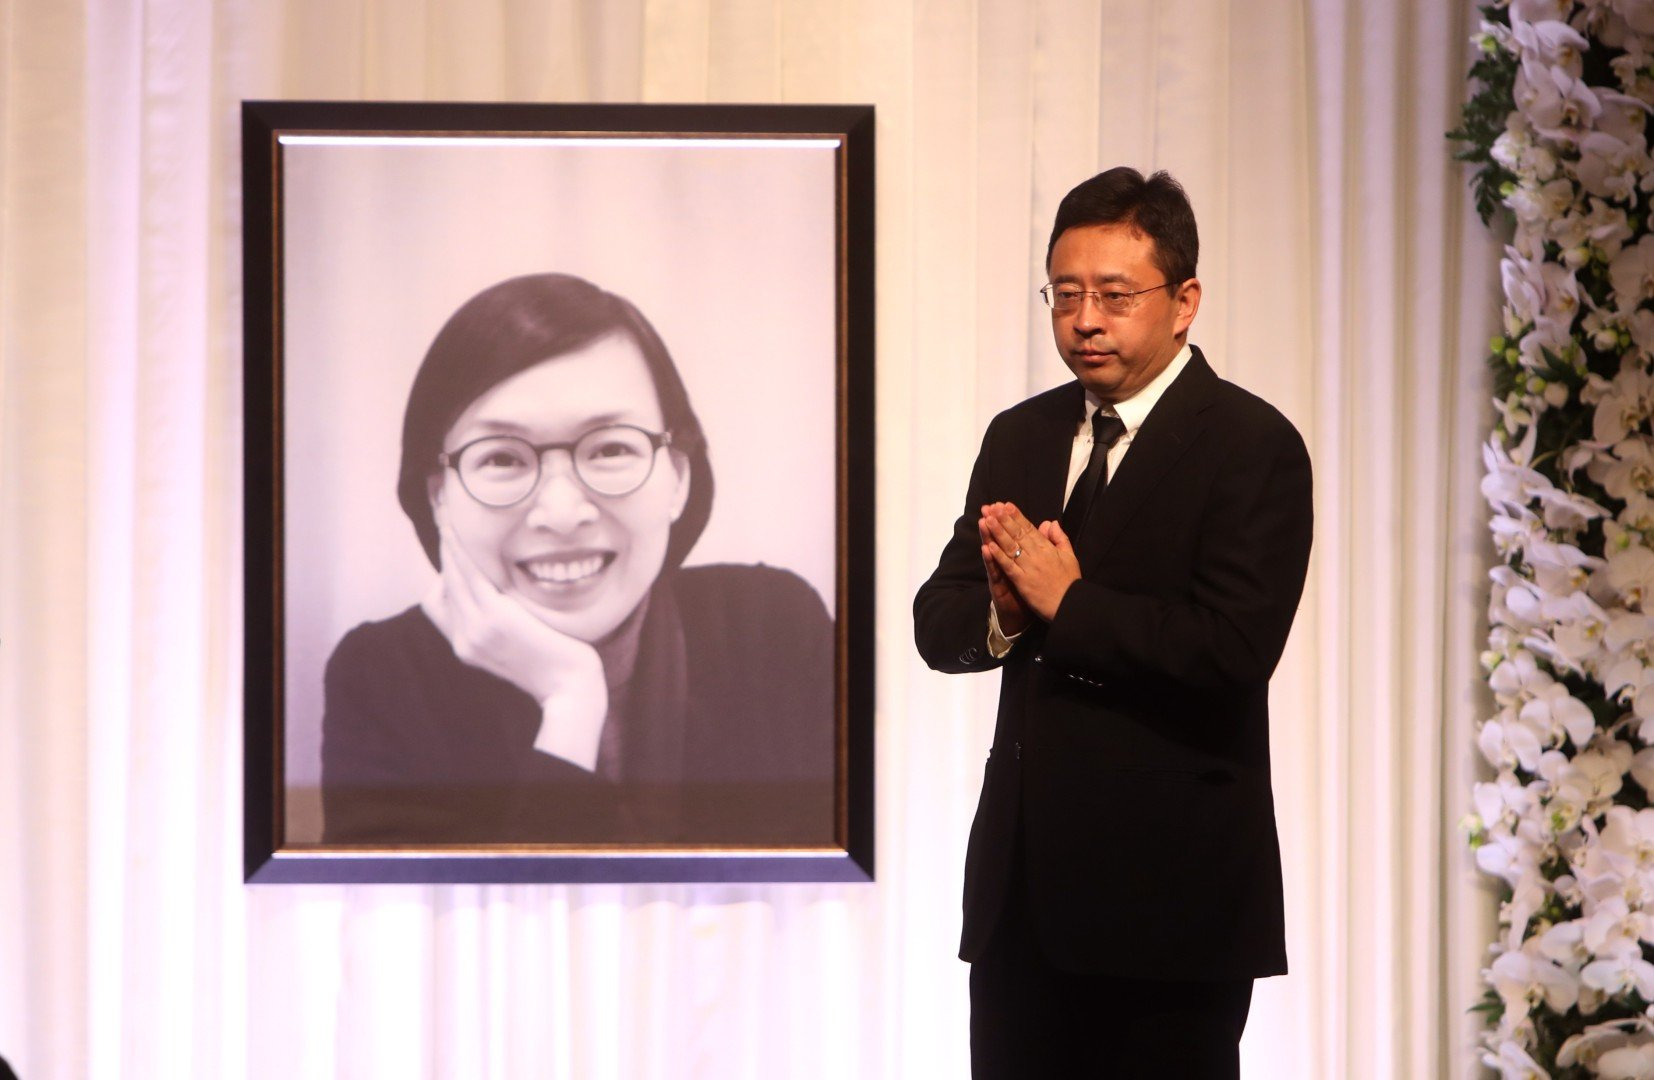 Former hong kong undersecretary for home affairs florence hui remembered as a good daughter mother wife worker and devoted public servant at memorial